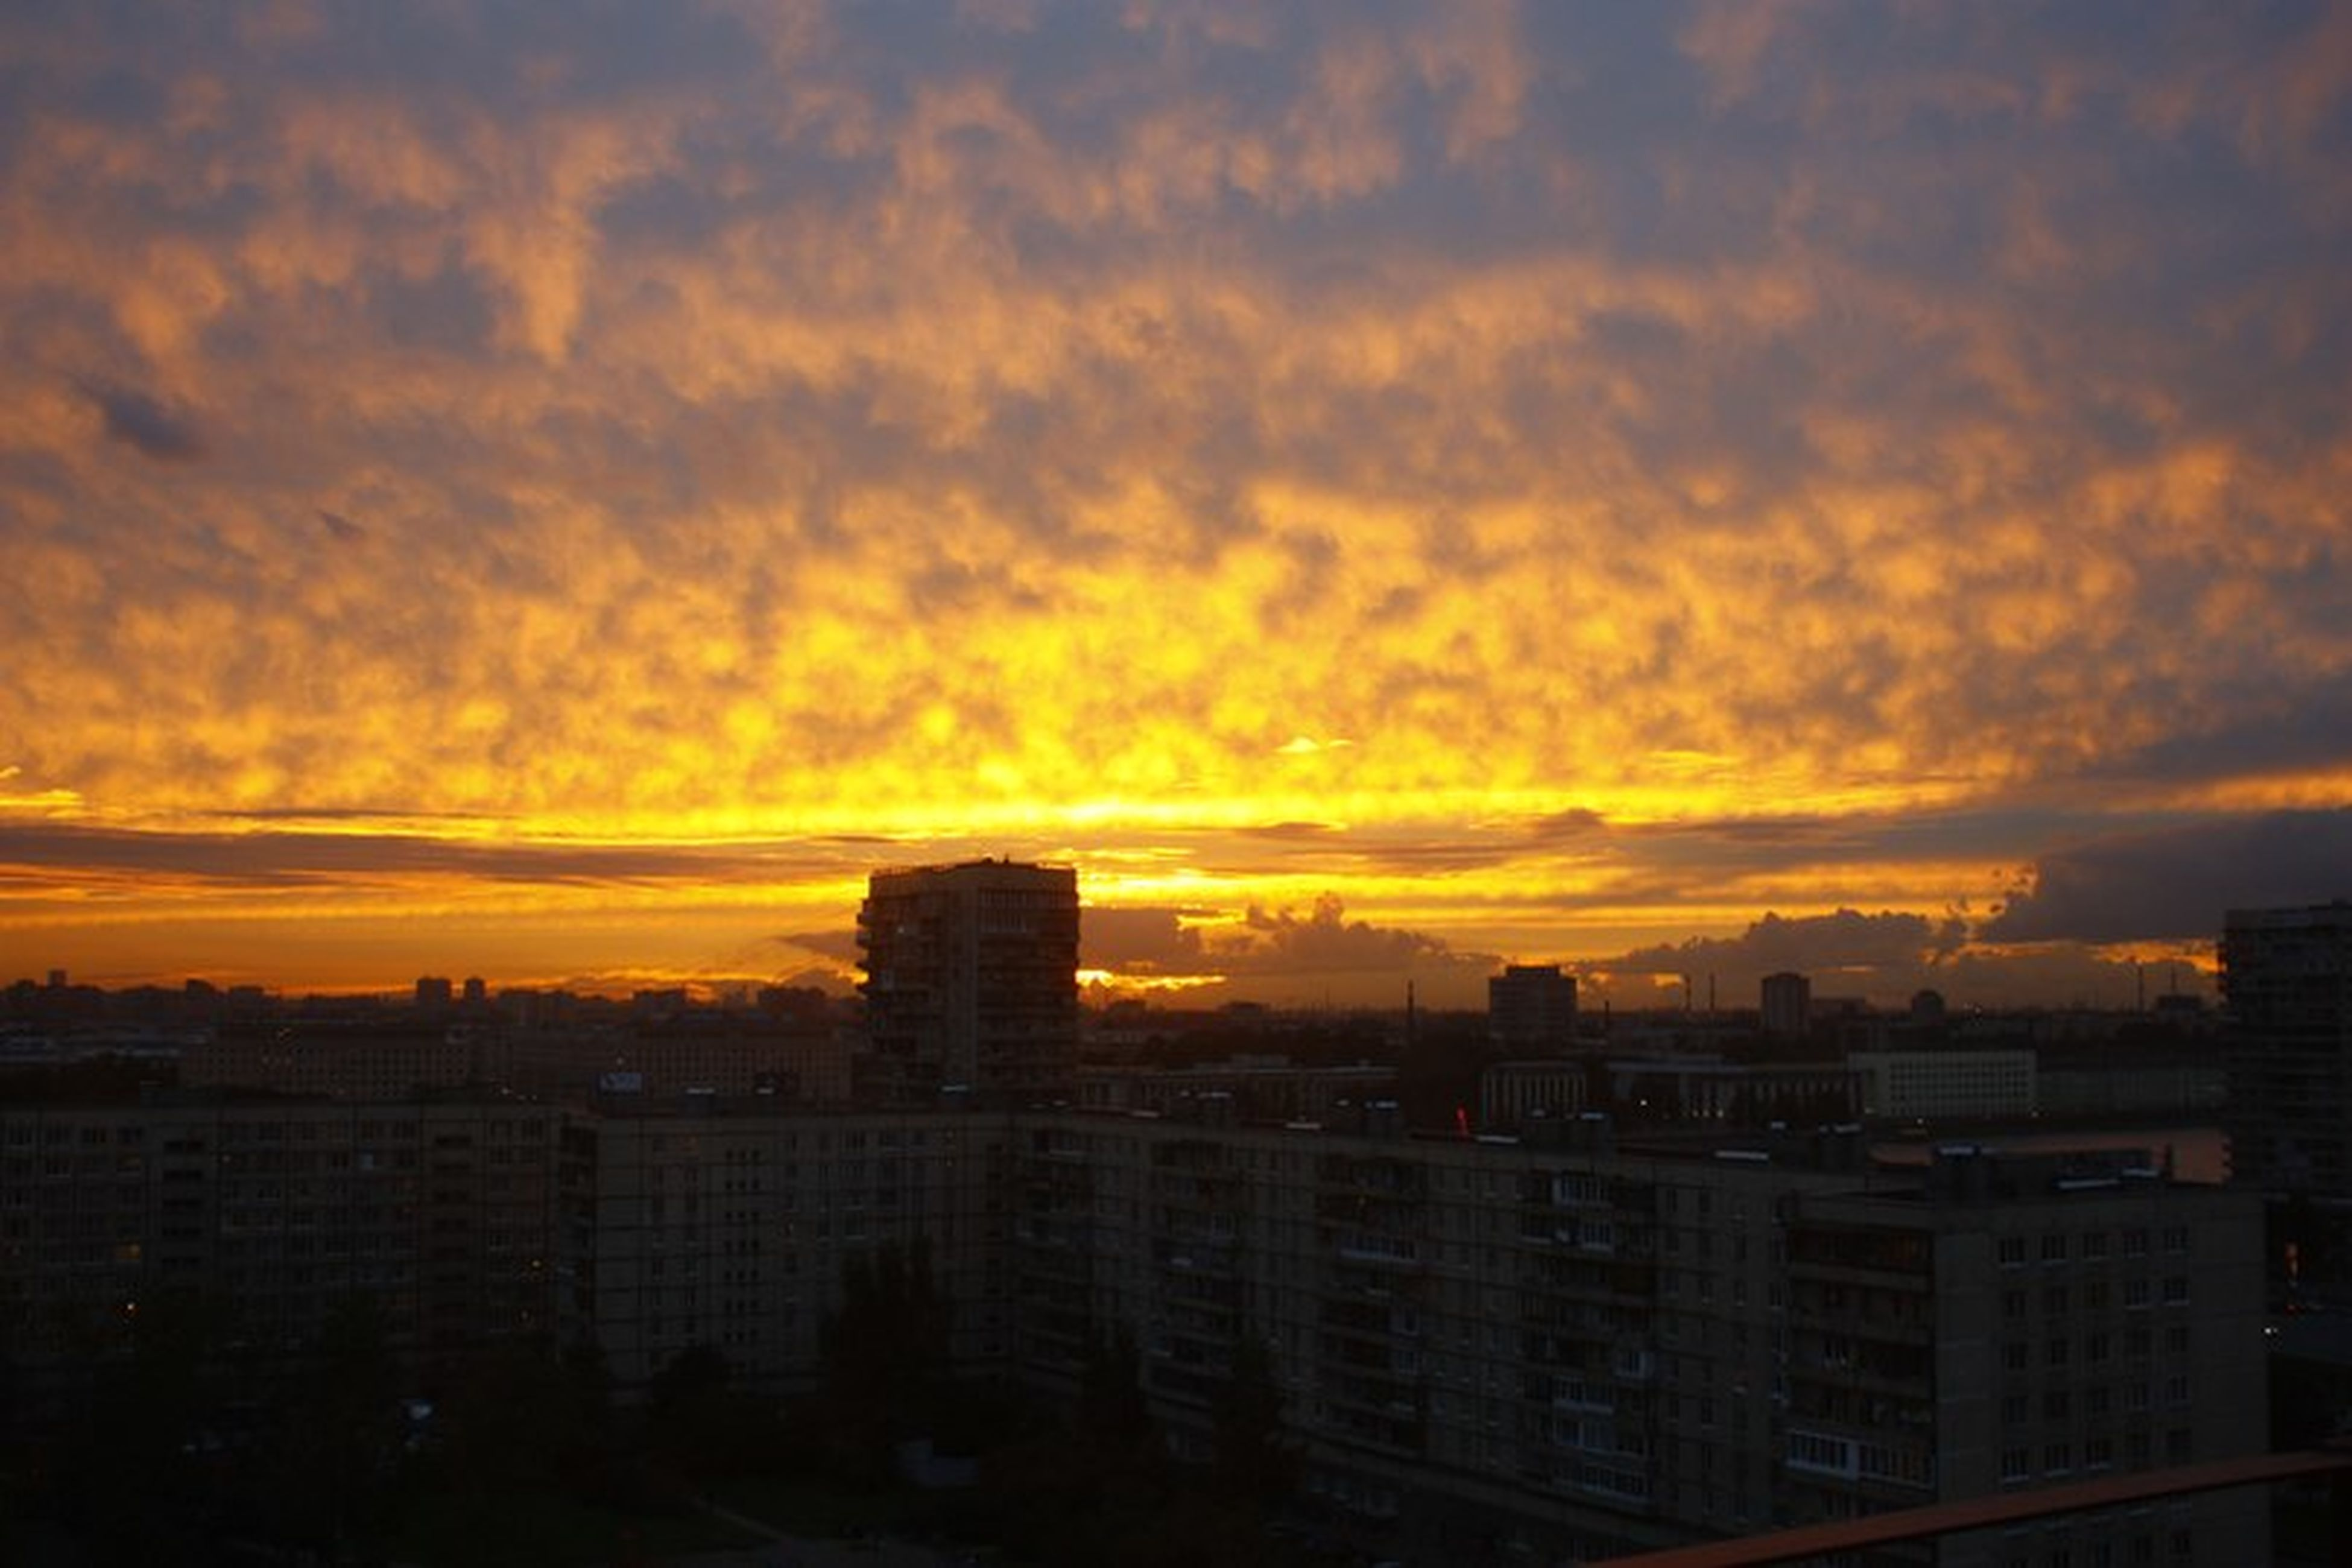 sunset, building exterior, architecture, built structure, city, orange color, sky, cityscape, cloud - sky, residential building, residential district, cloudy, cloud, residential structure, silhouette, city life, dramatic sky, skyscraper, high angle view, outdoors